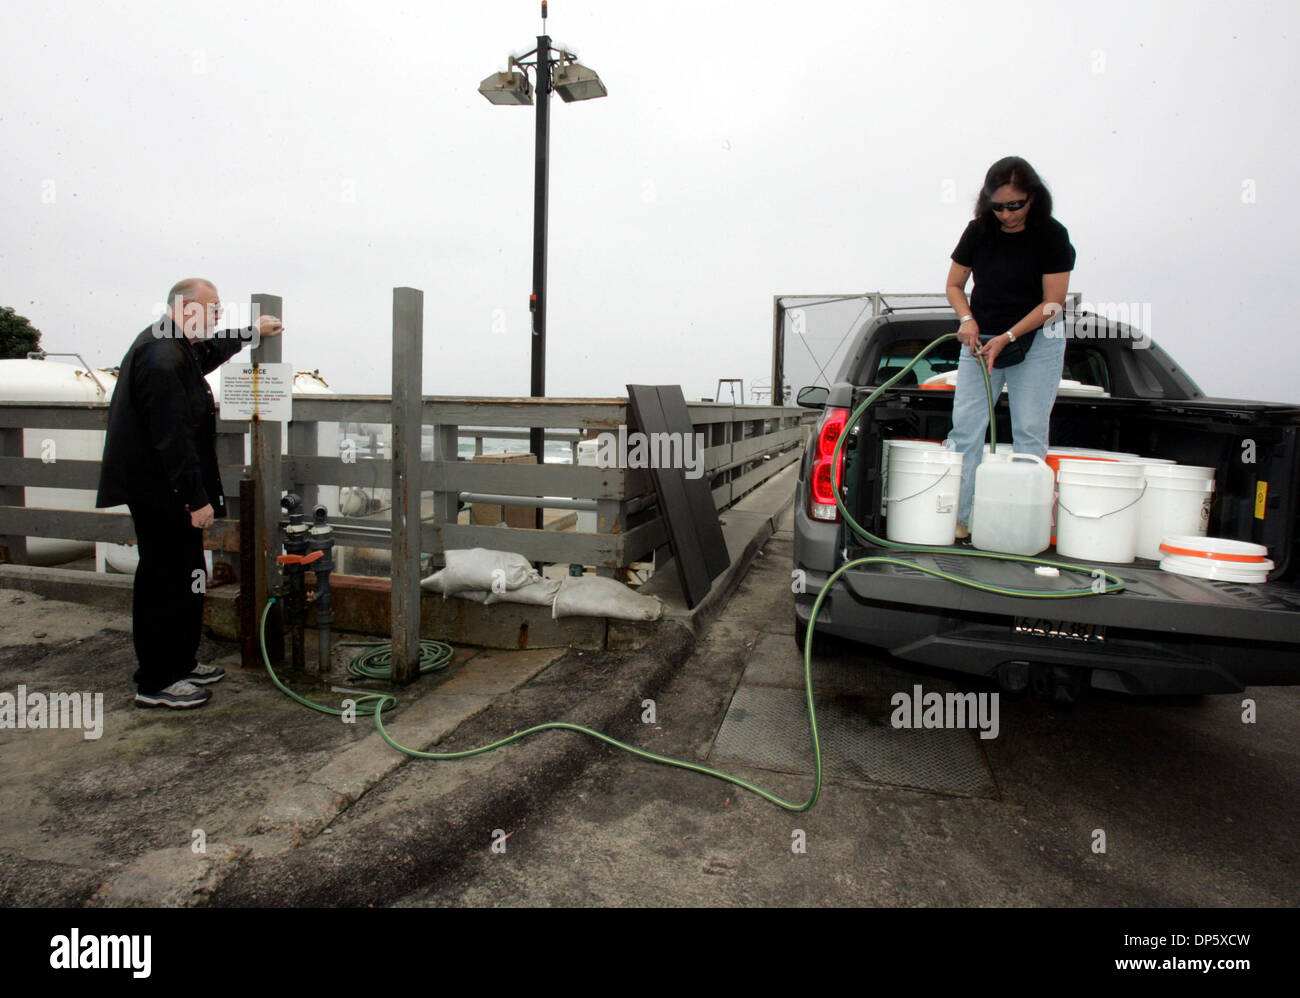 Sep 27, 2006; San Diego, CA, USA; JAMES MURPHY, left, and his wife, ANGELA, fill buckets with salt-water from Scripps Institute of Oceanography in La Jolla, in order to monthly change the water in their 240-gallon salt-water fish tank in their San Diego home.  Mandatory Credit: Photo by Laura Embry/SDU-T/ZUMA Press. (©) Copyright 2006 by SDU-T - Stock Image